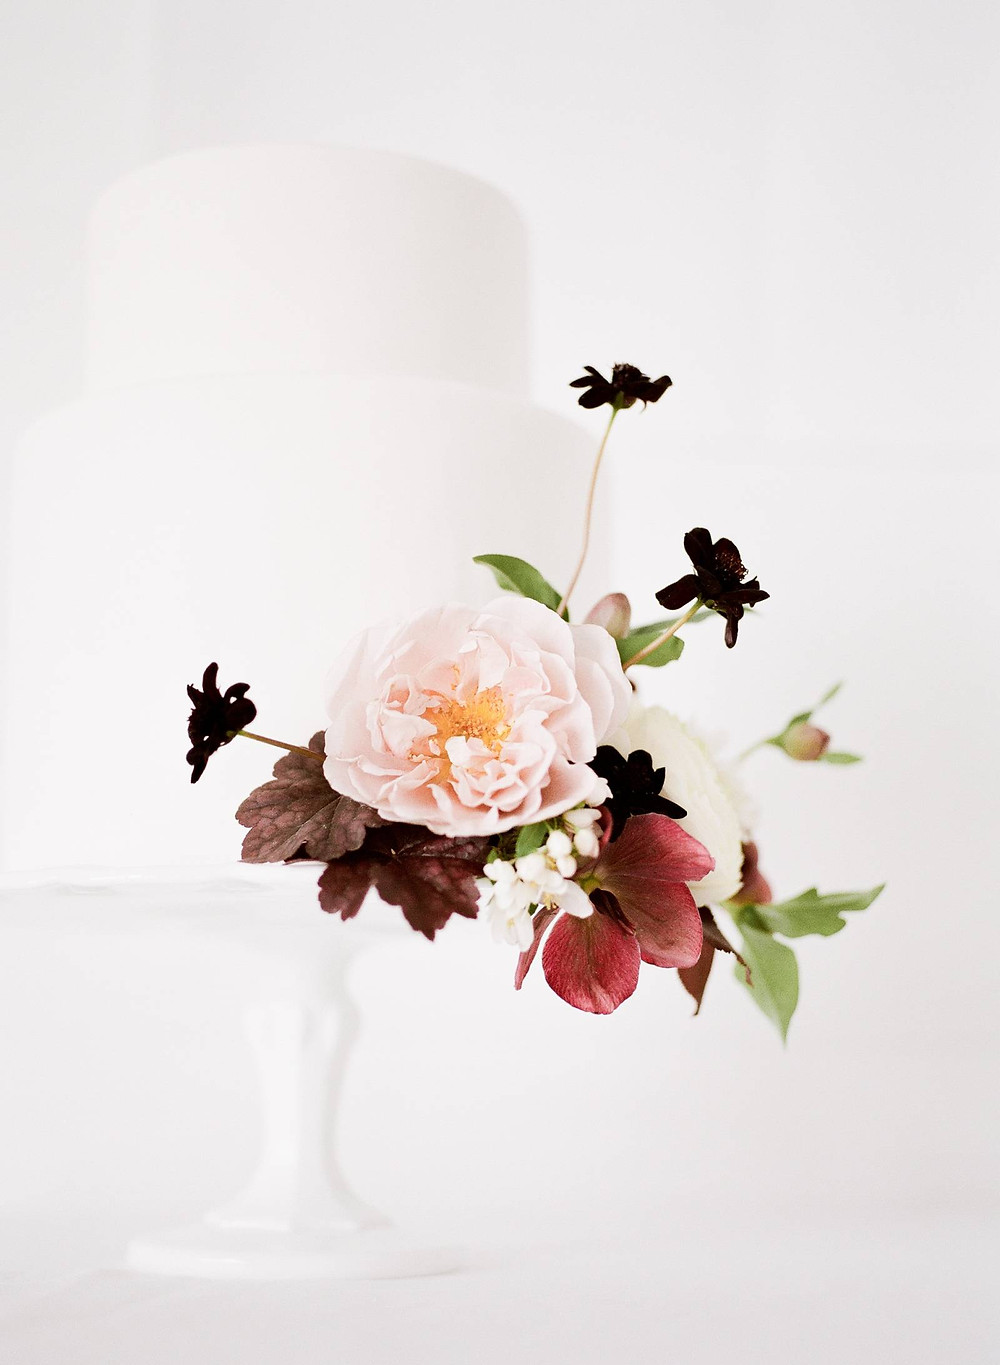 Minimalist white wedding cake on white stand with mauve and burgundy flowers